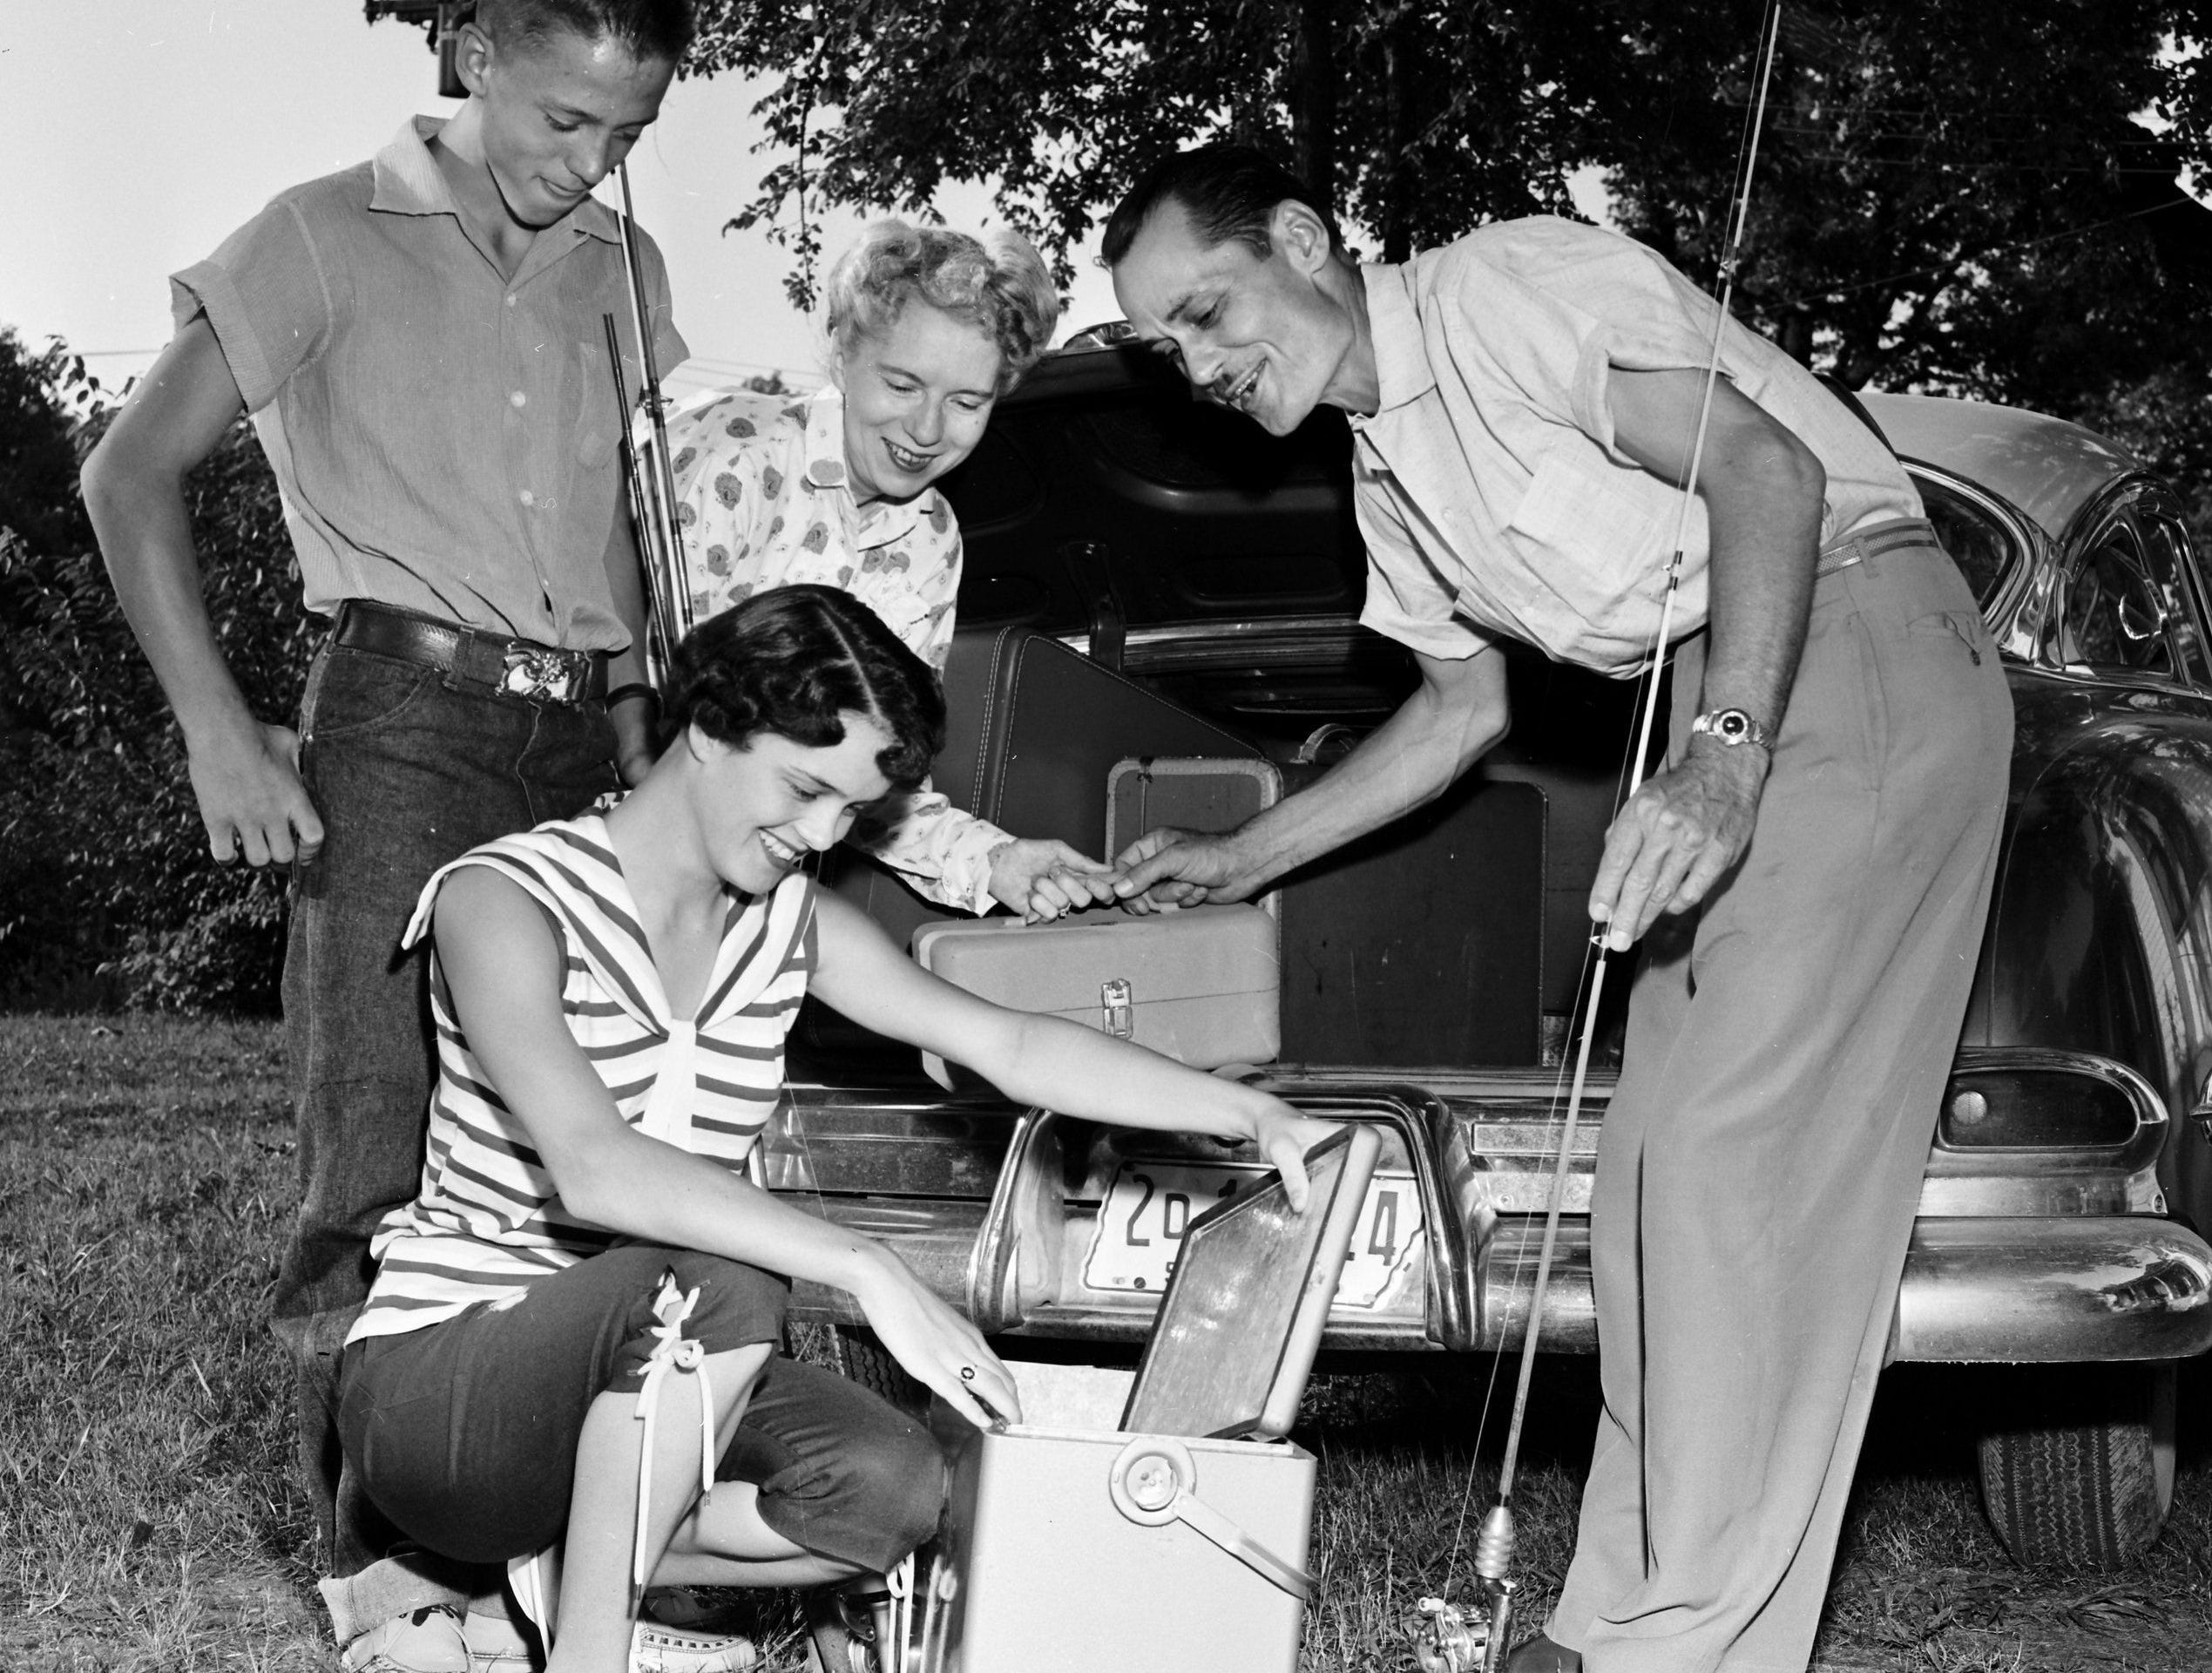 Joe May, left, 13-year-old champion of the Mid-South Junior Fishing Rodeo, is now enjoying his prize ? a week?s all-expenses-paid trip to Watts Bar Reservoir near Chattanooga during July 1955. Joe checks his equipment with his mother, Mrs. J.C. May, and his father, J.C. May. Sister Dolores, squatting, is vacationing with the champ and his parents.